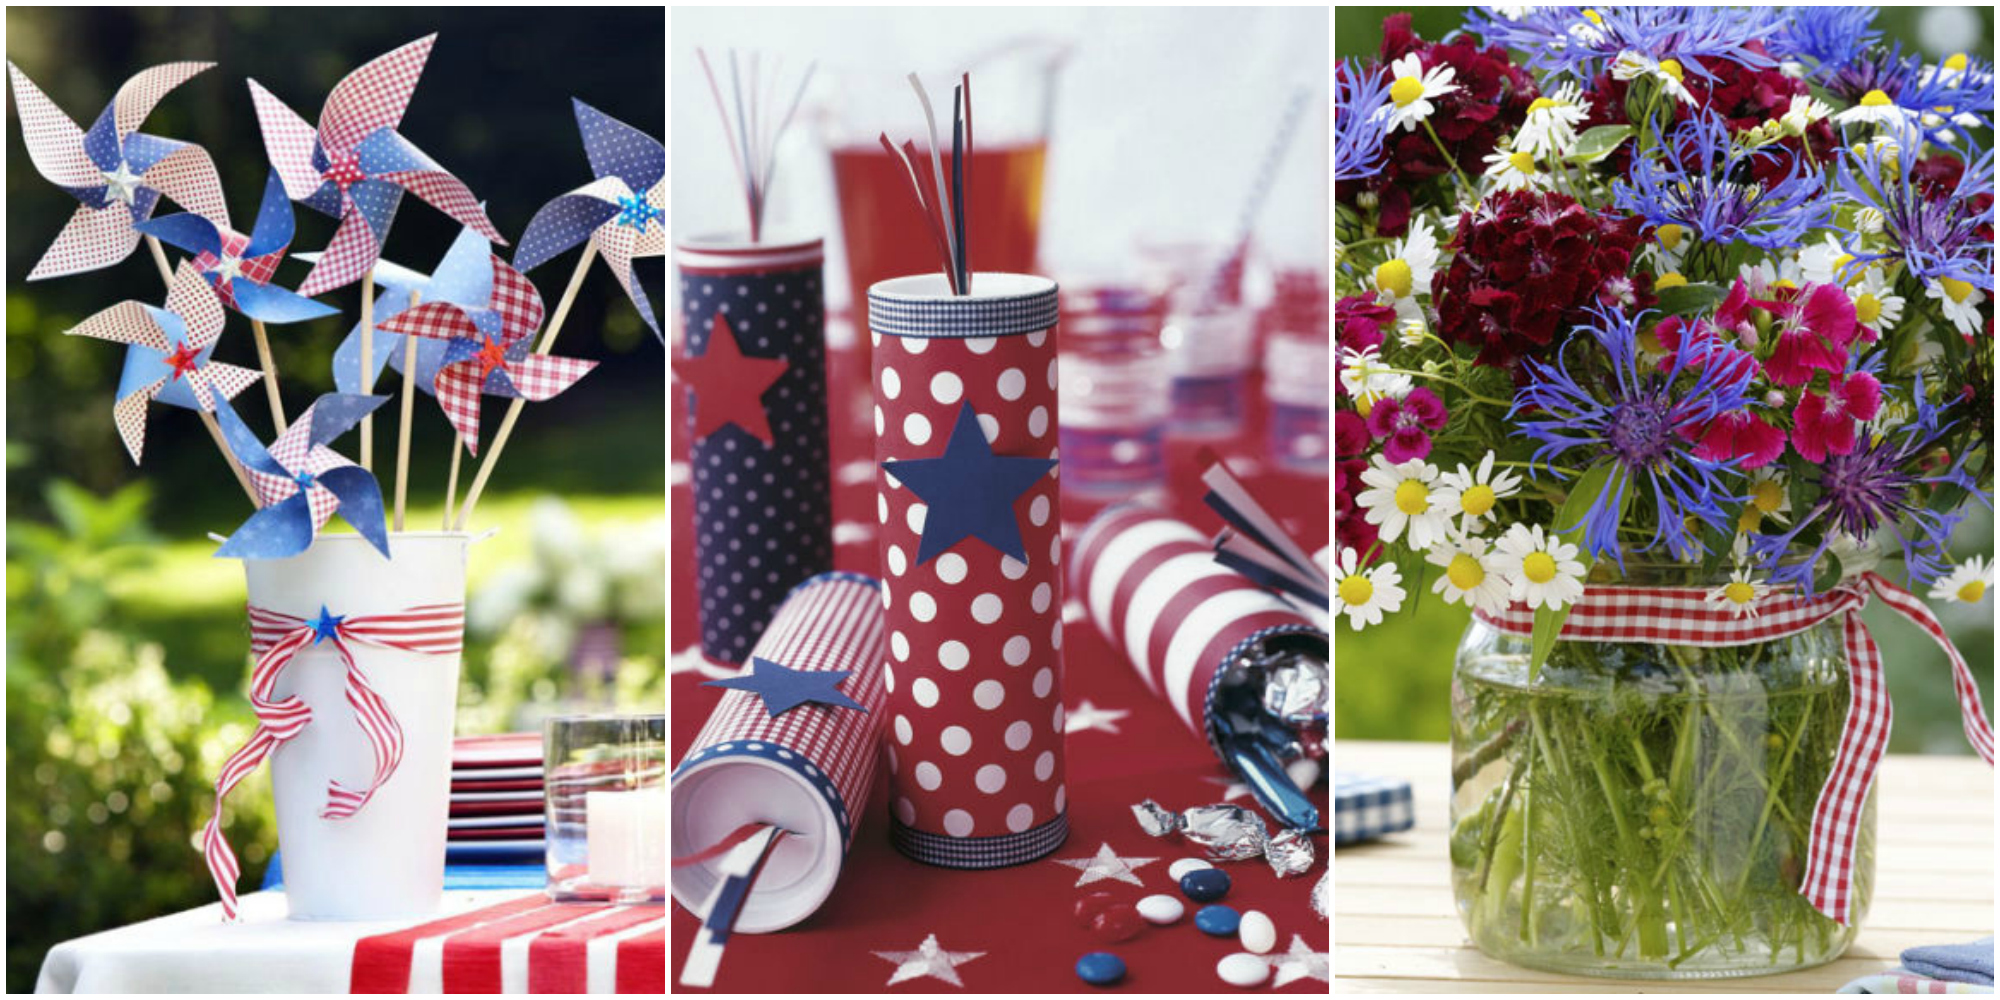 1462467525-fourth-of-july-decorations